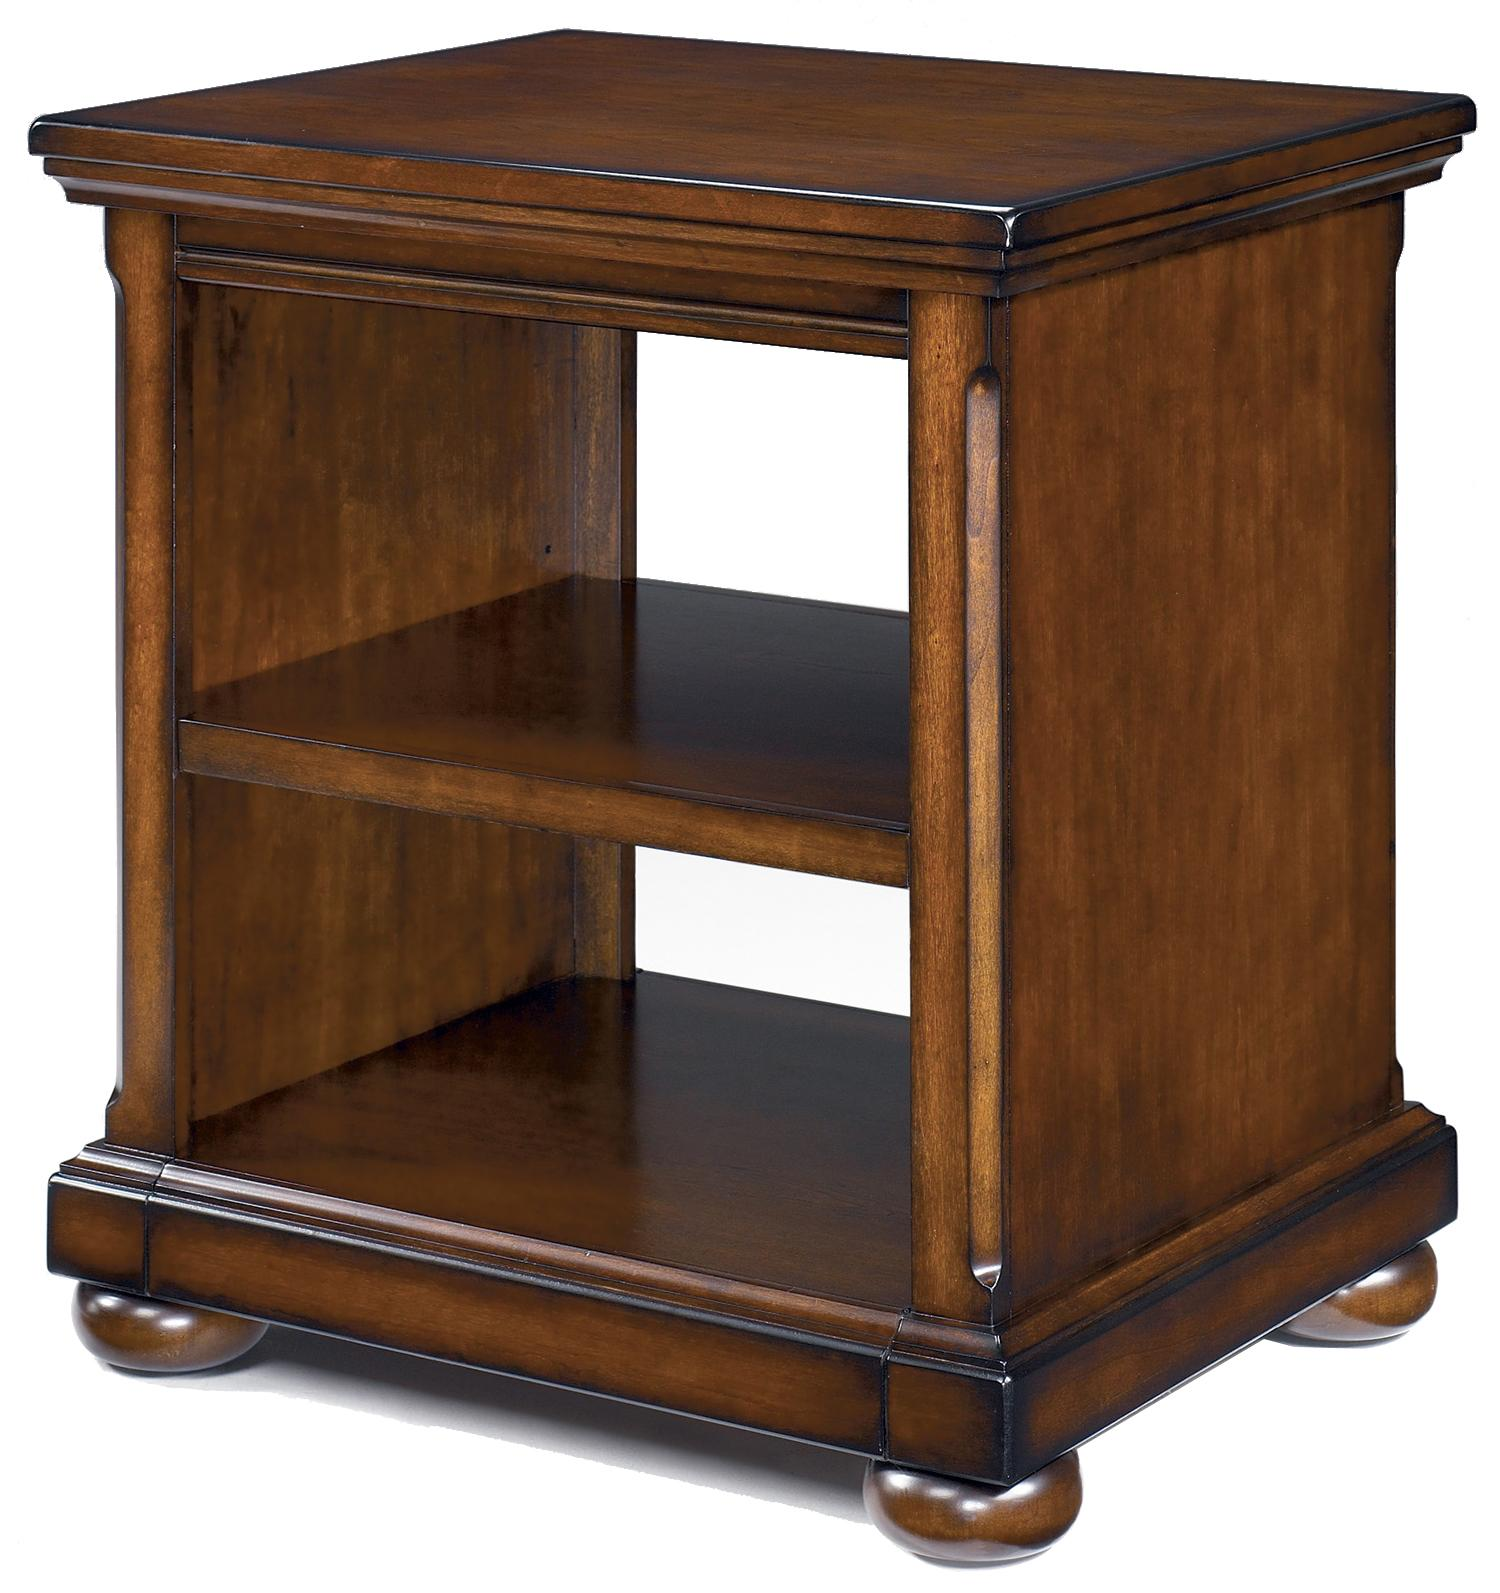 Signature Design by Ashley Porter Corner Table (RTA) - Item Number: H697-47